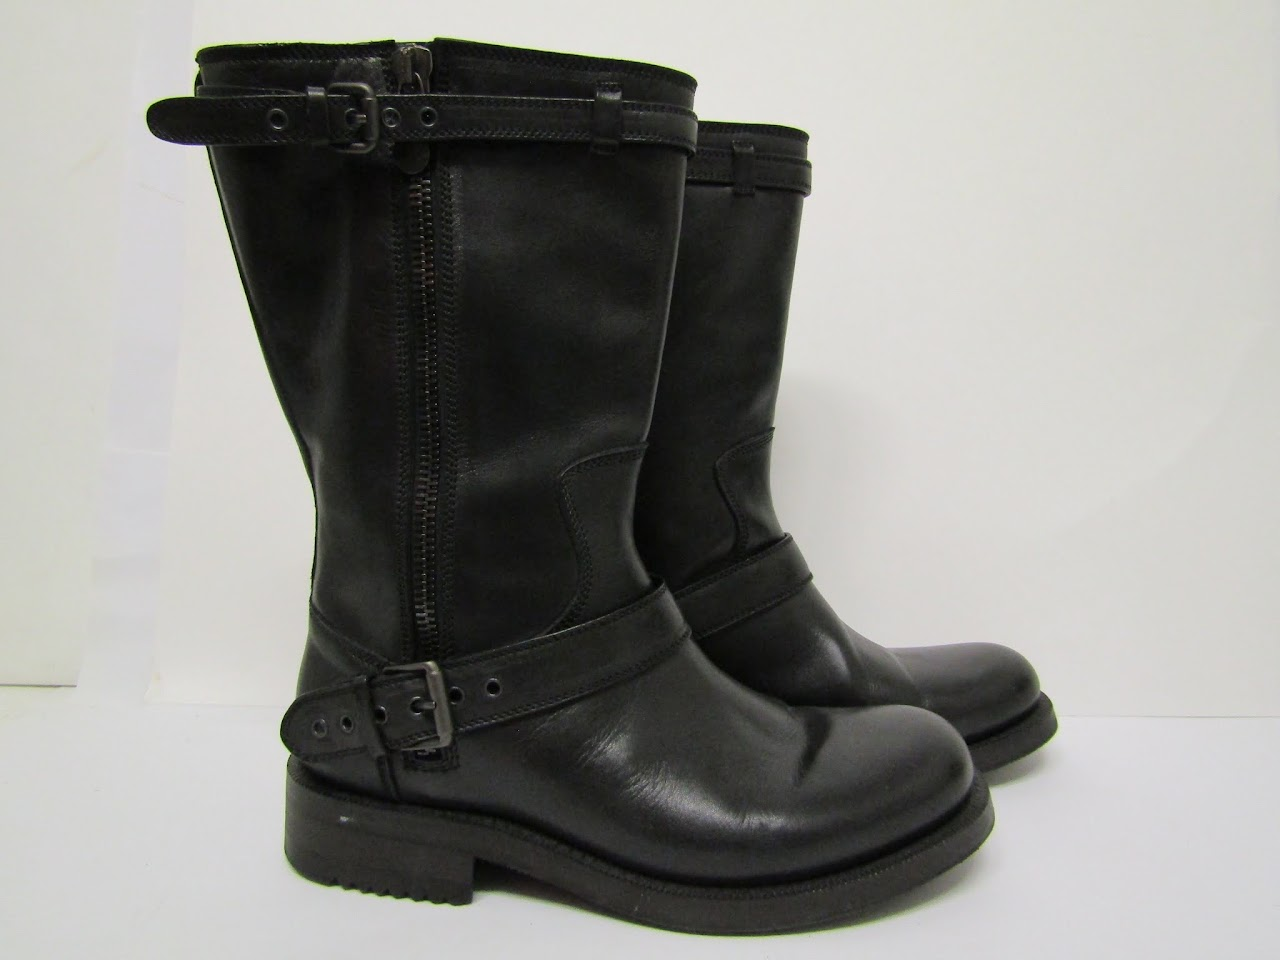 Bottega Veneta Moto-Cross Boots